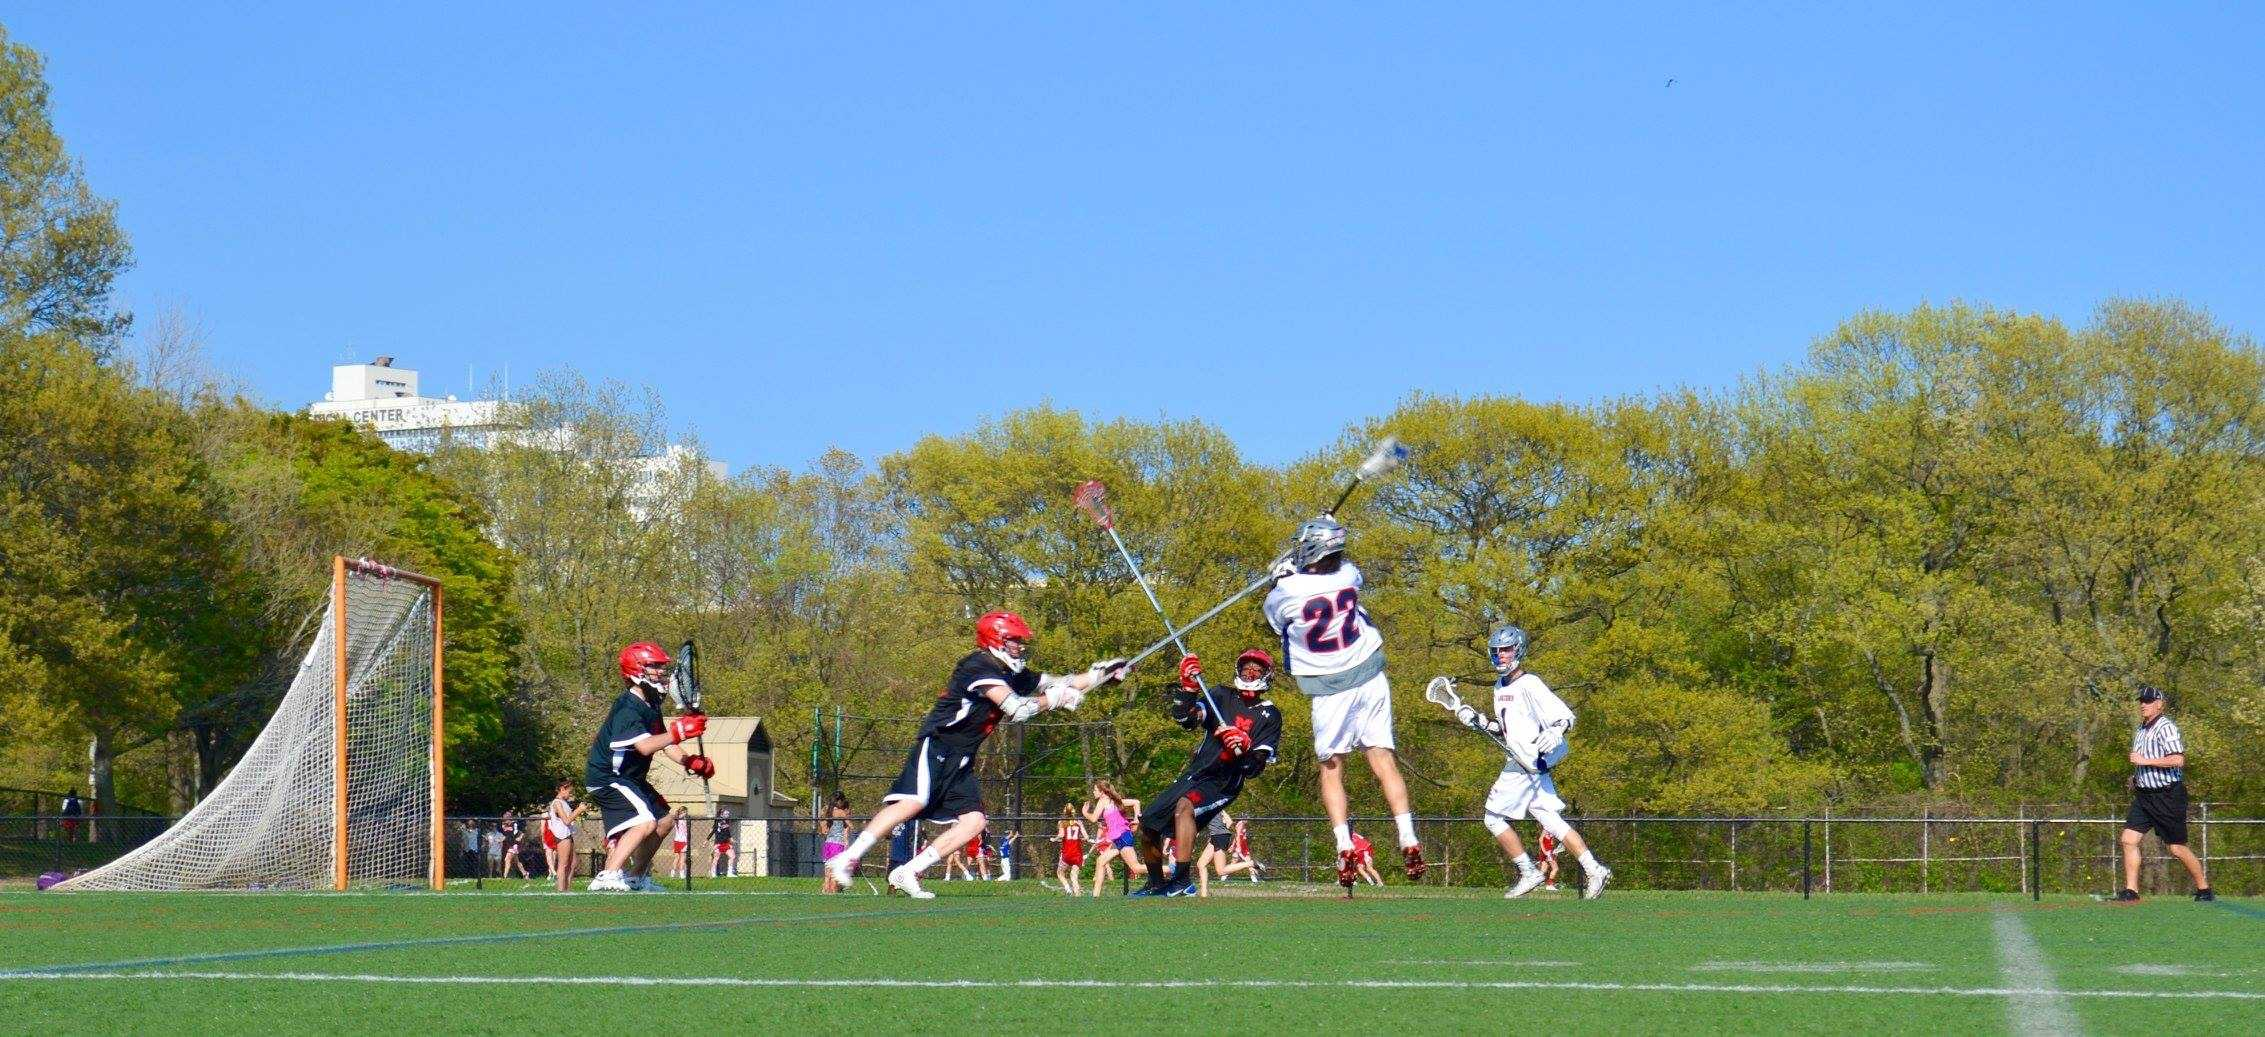 Senior Nicholas Gerszten directs a shot at goal against Milton High School at Downes Field. Gerszten will be continuing his lacrosse career this spring season.